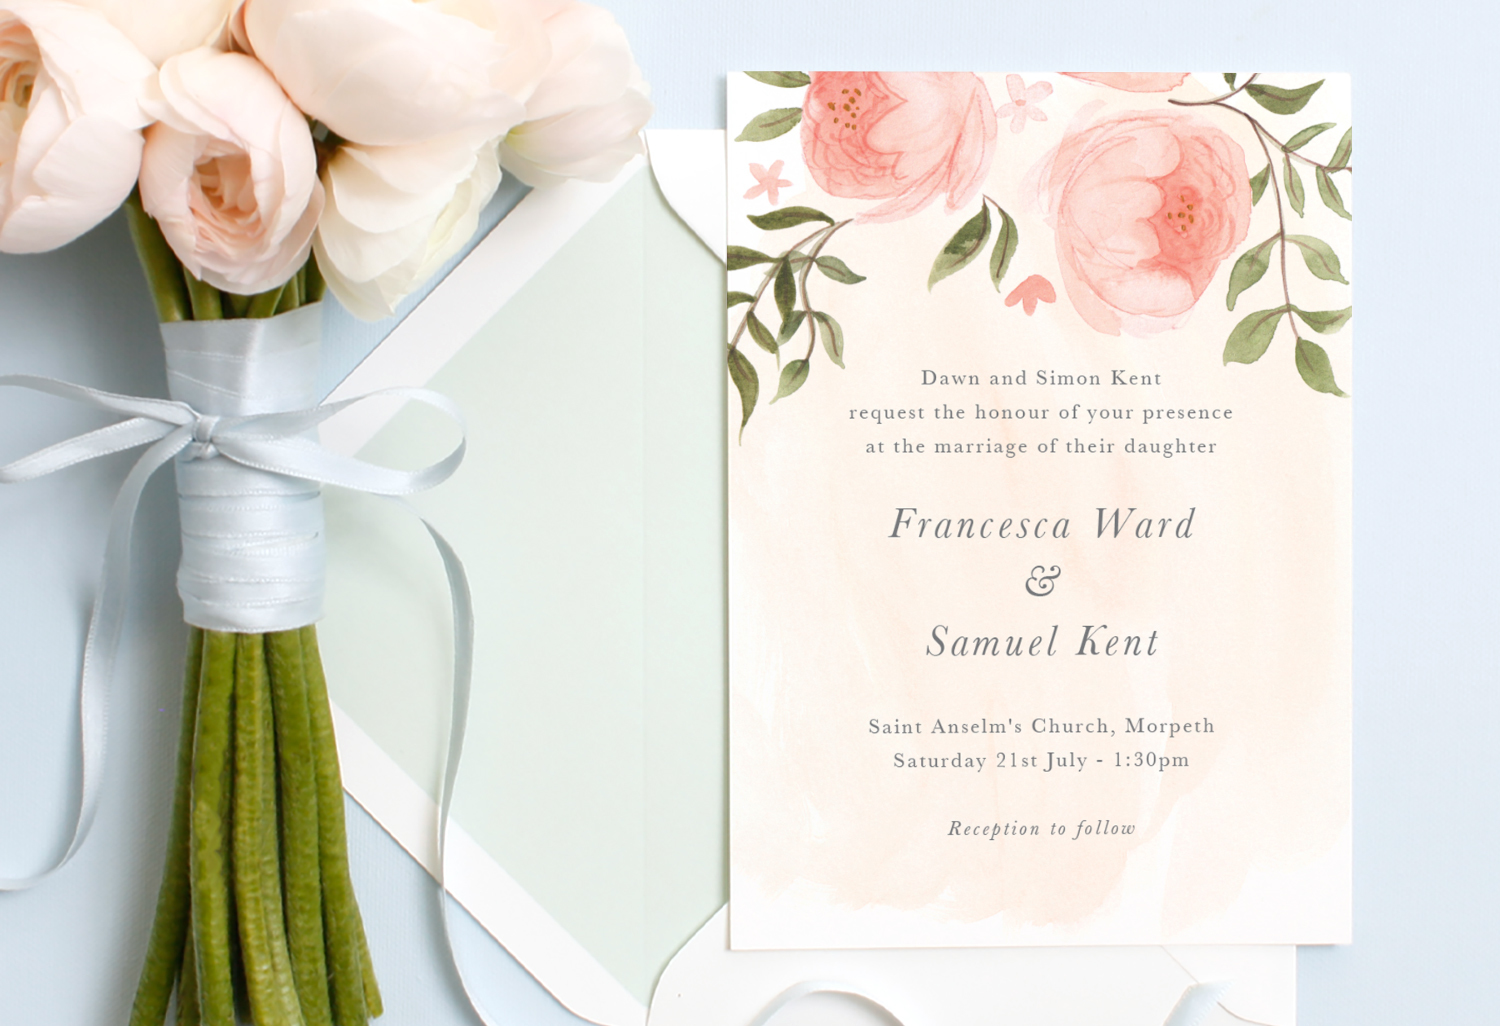 Wedding Invitation Wording Ideas: Wedding Invitation Wording - Ideas & Inspiration